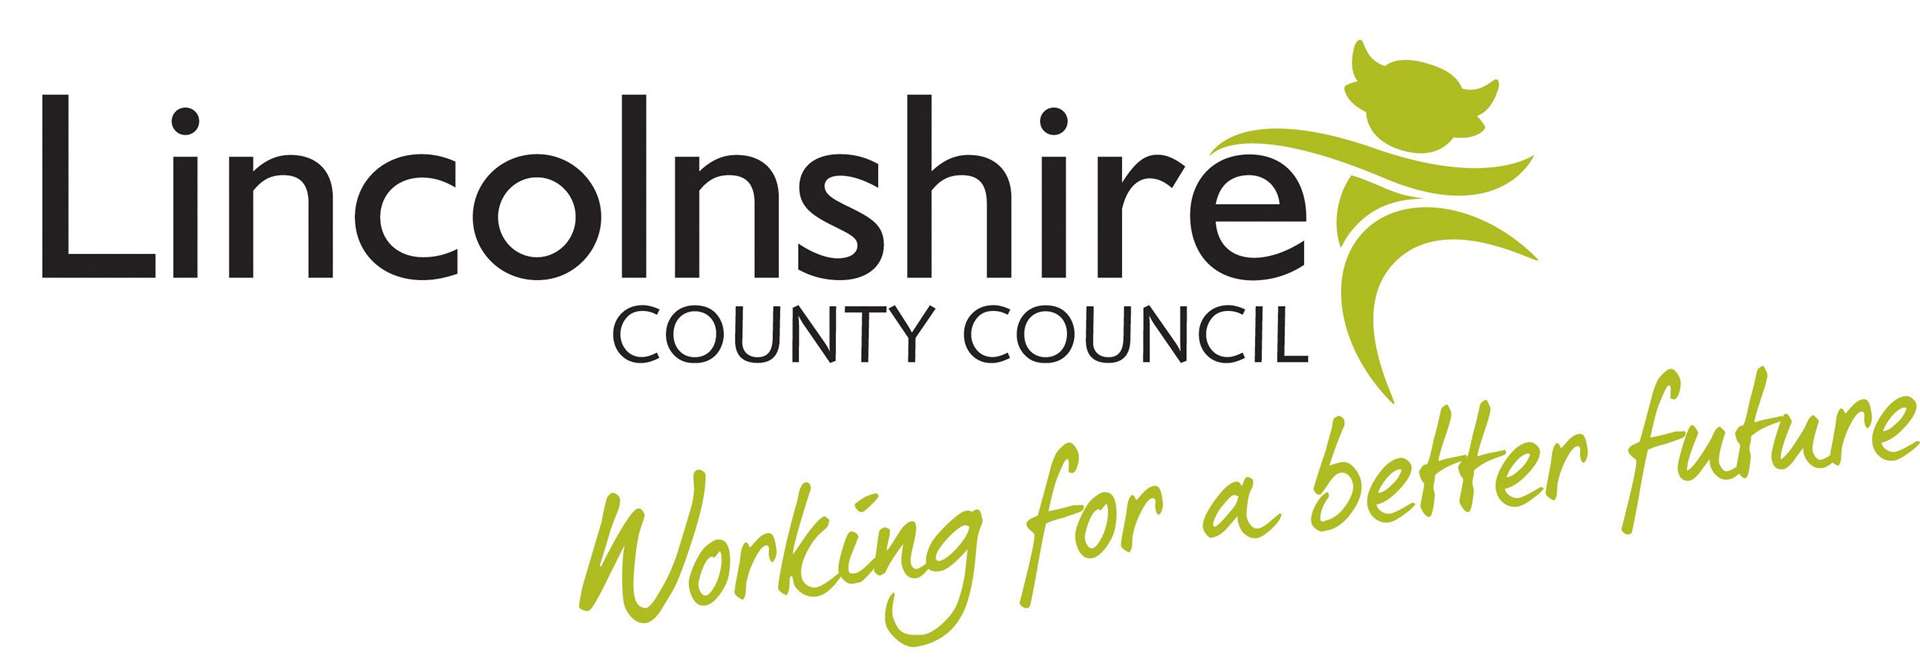 Lincolnshire County Council logo (34101913)